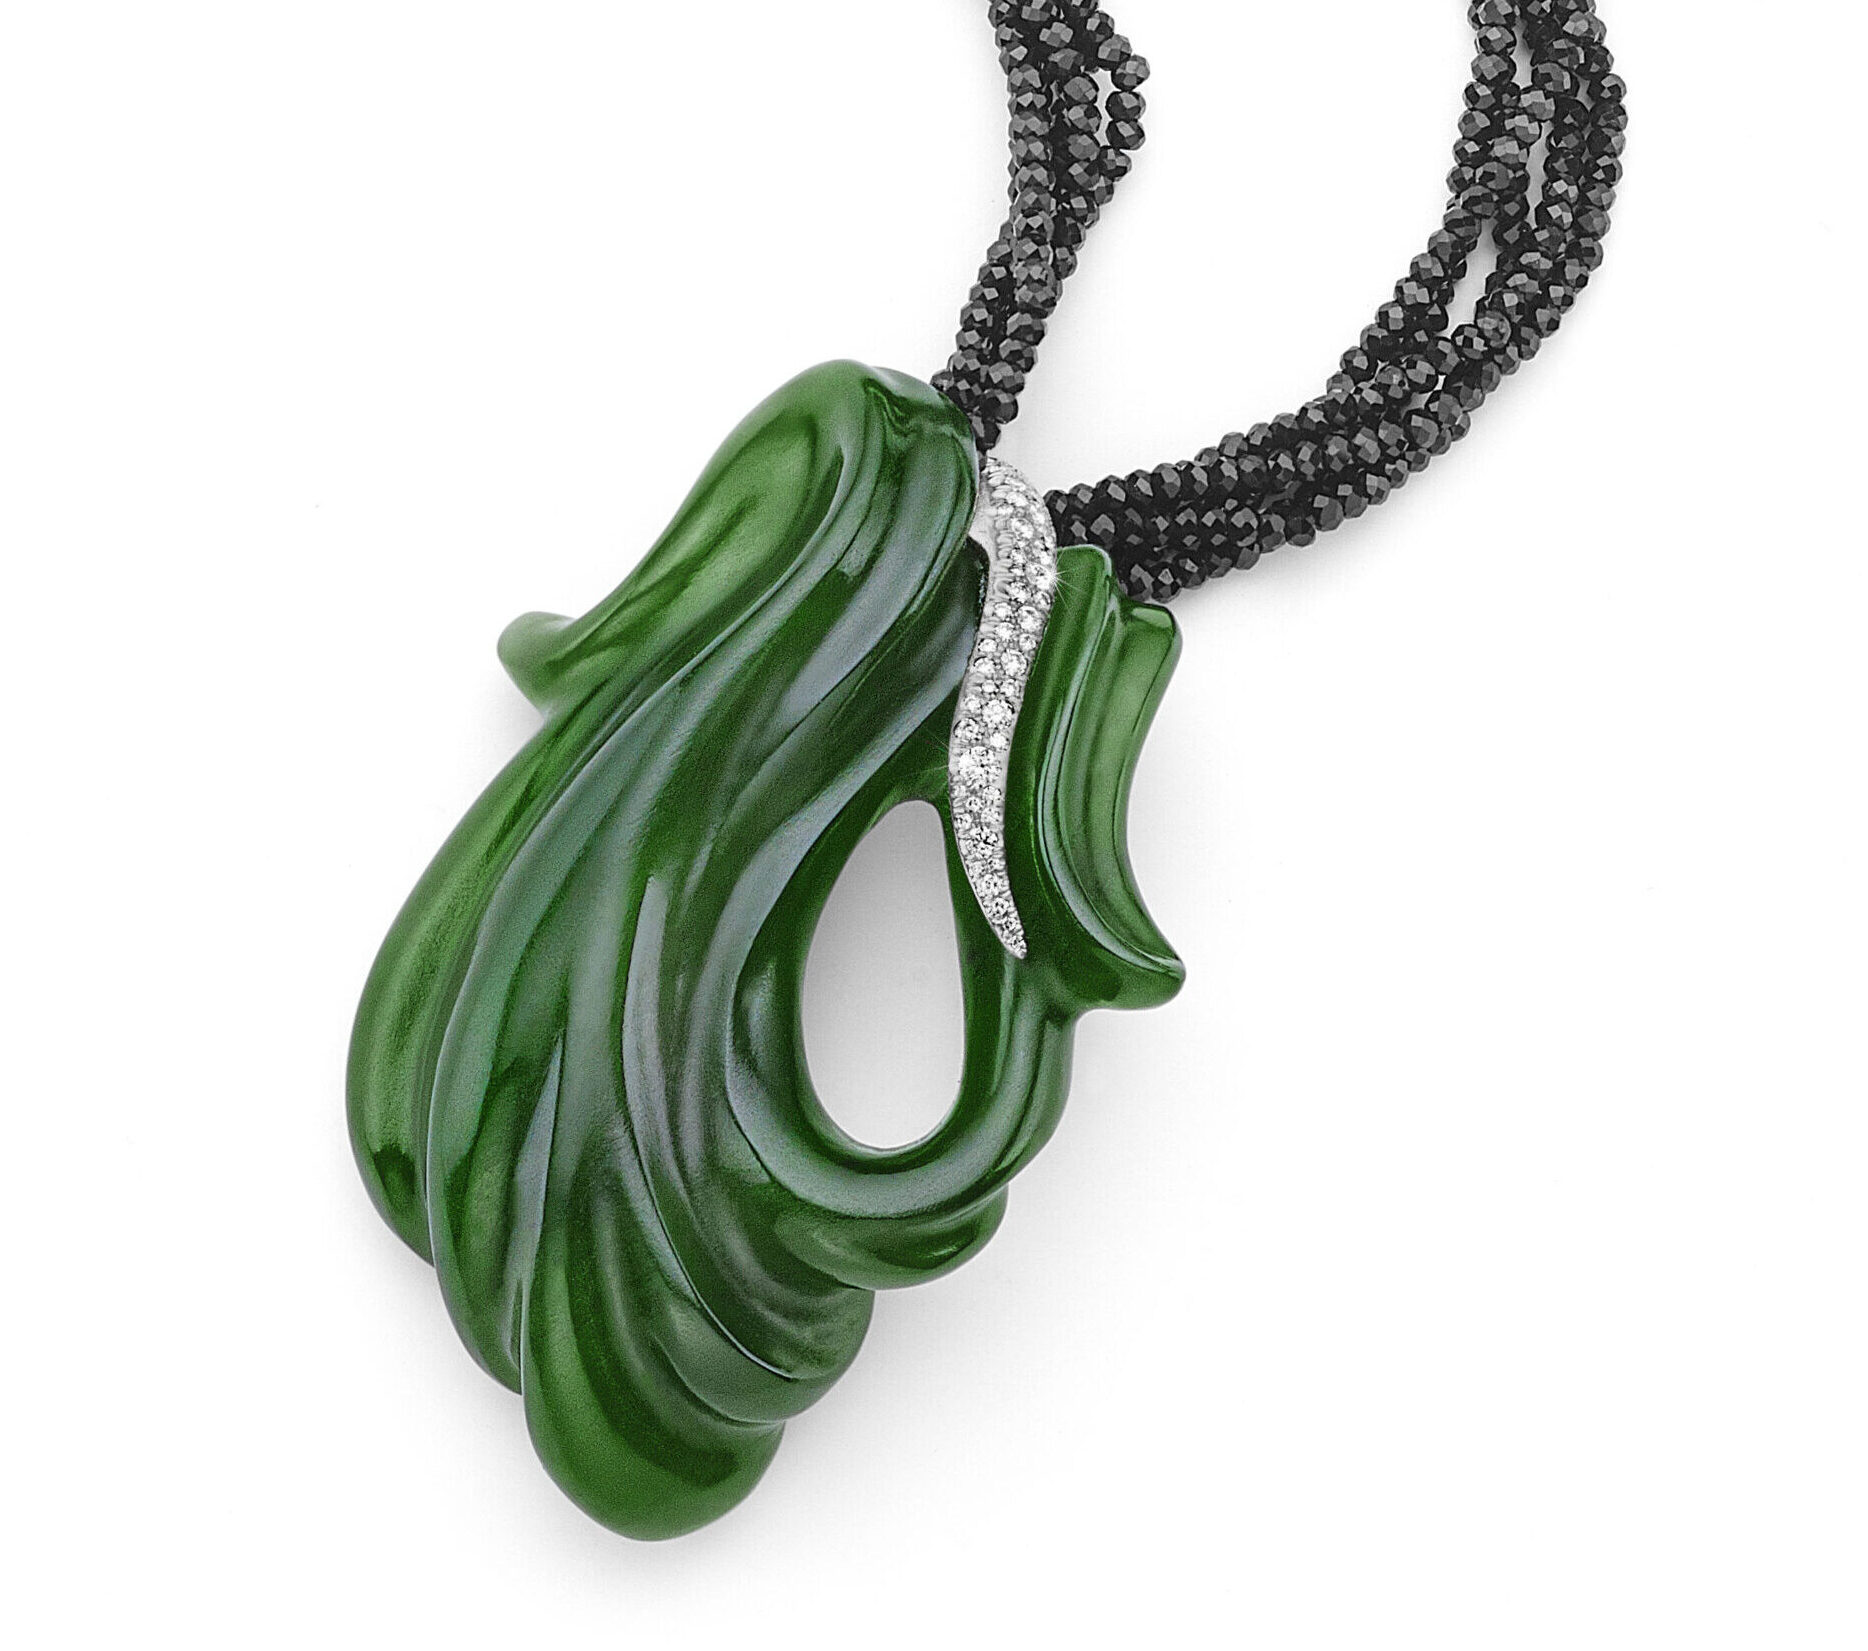 Mossy River Jade Necklace Pendant Awarded